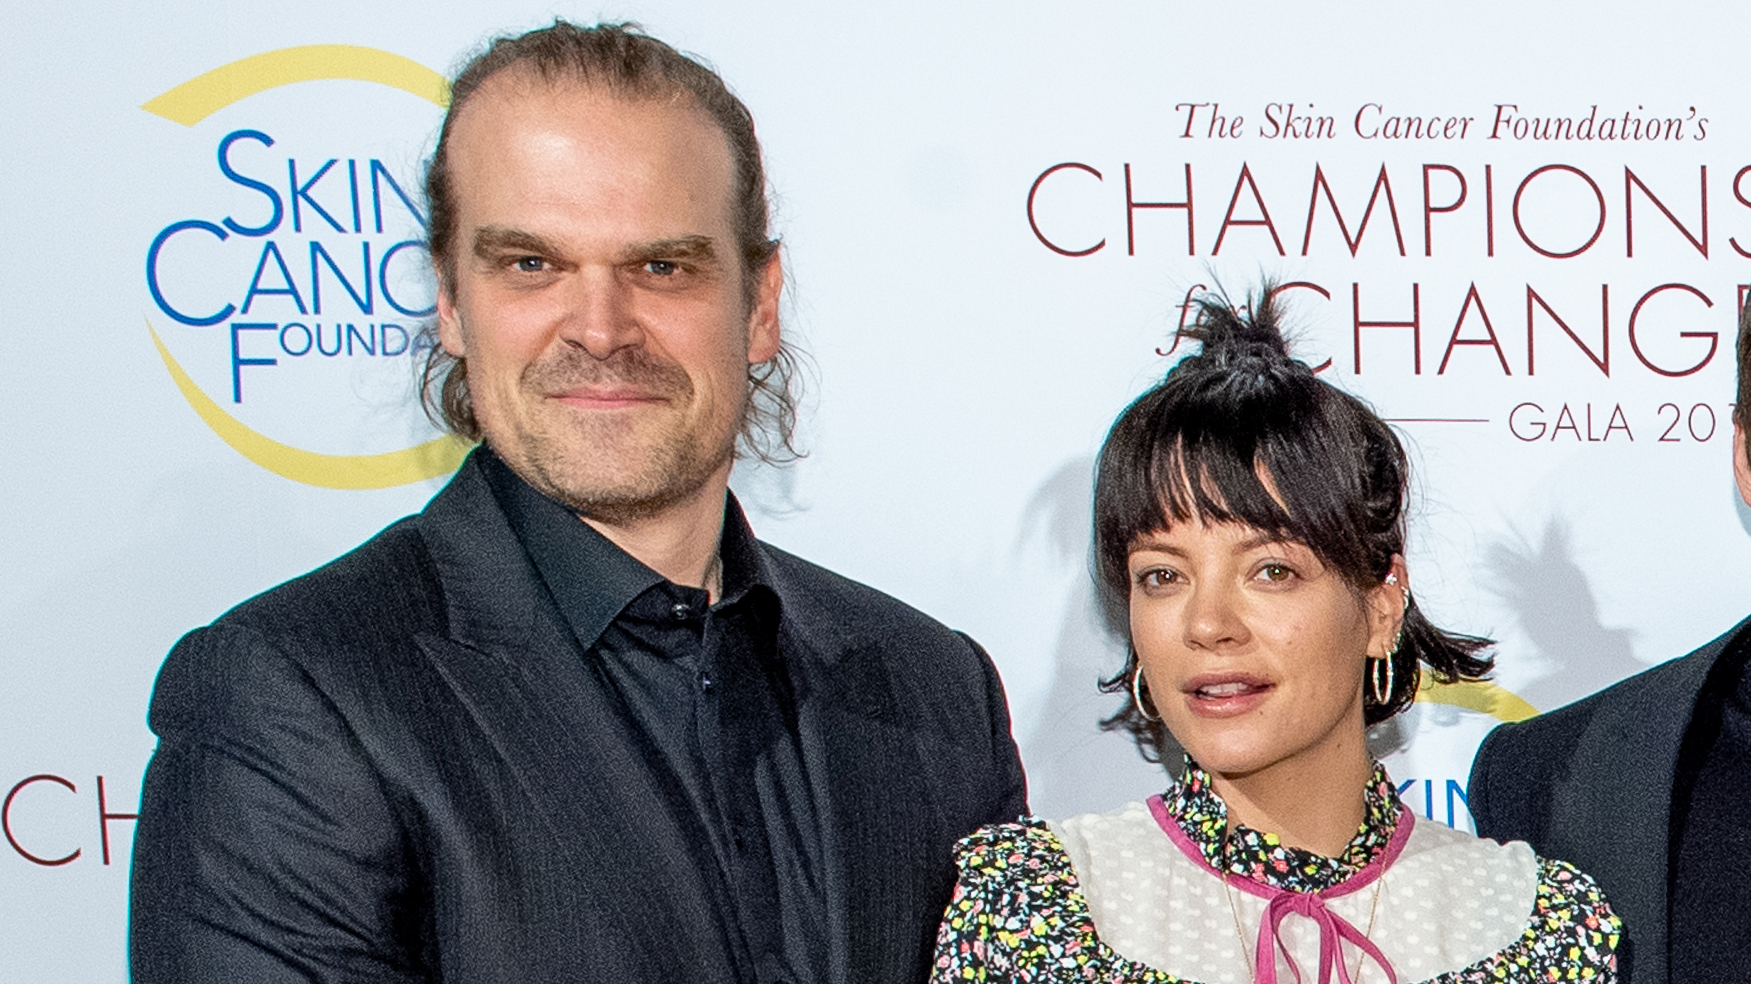 David Harbour shares first Instagram picture with Lily Allen: 'The prince, princess and the parking lot'